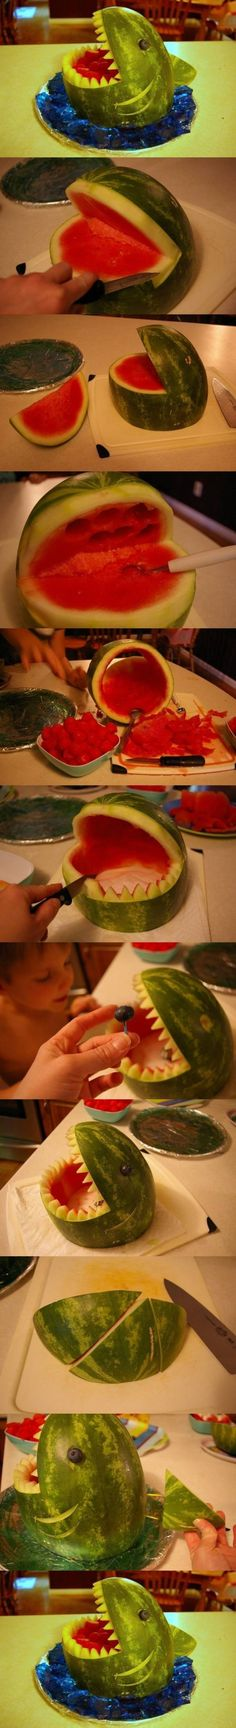 DIY Watermelon Shark Carving Internet Tutorial~ Tutorial by diyforever~